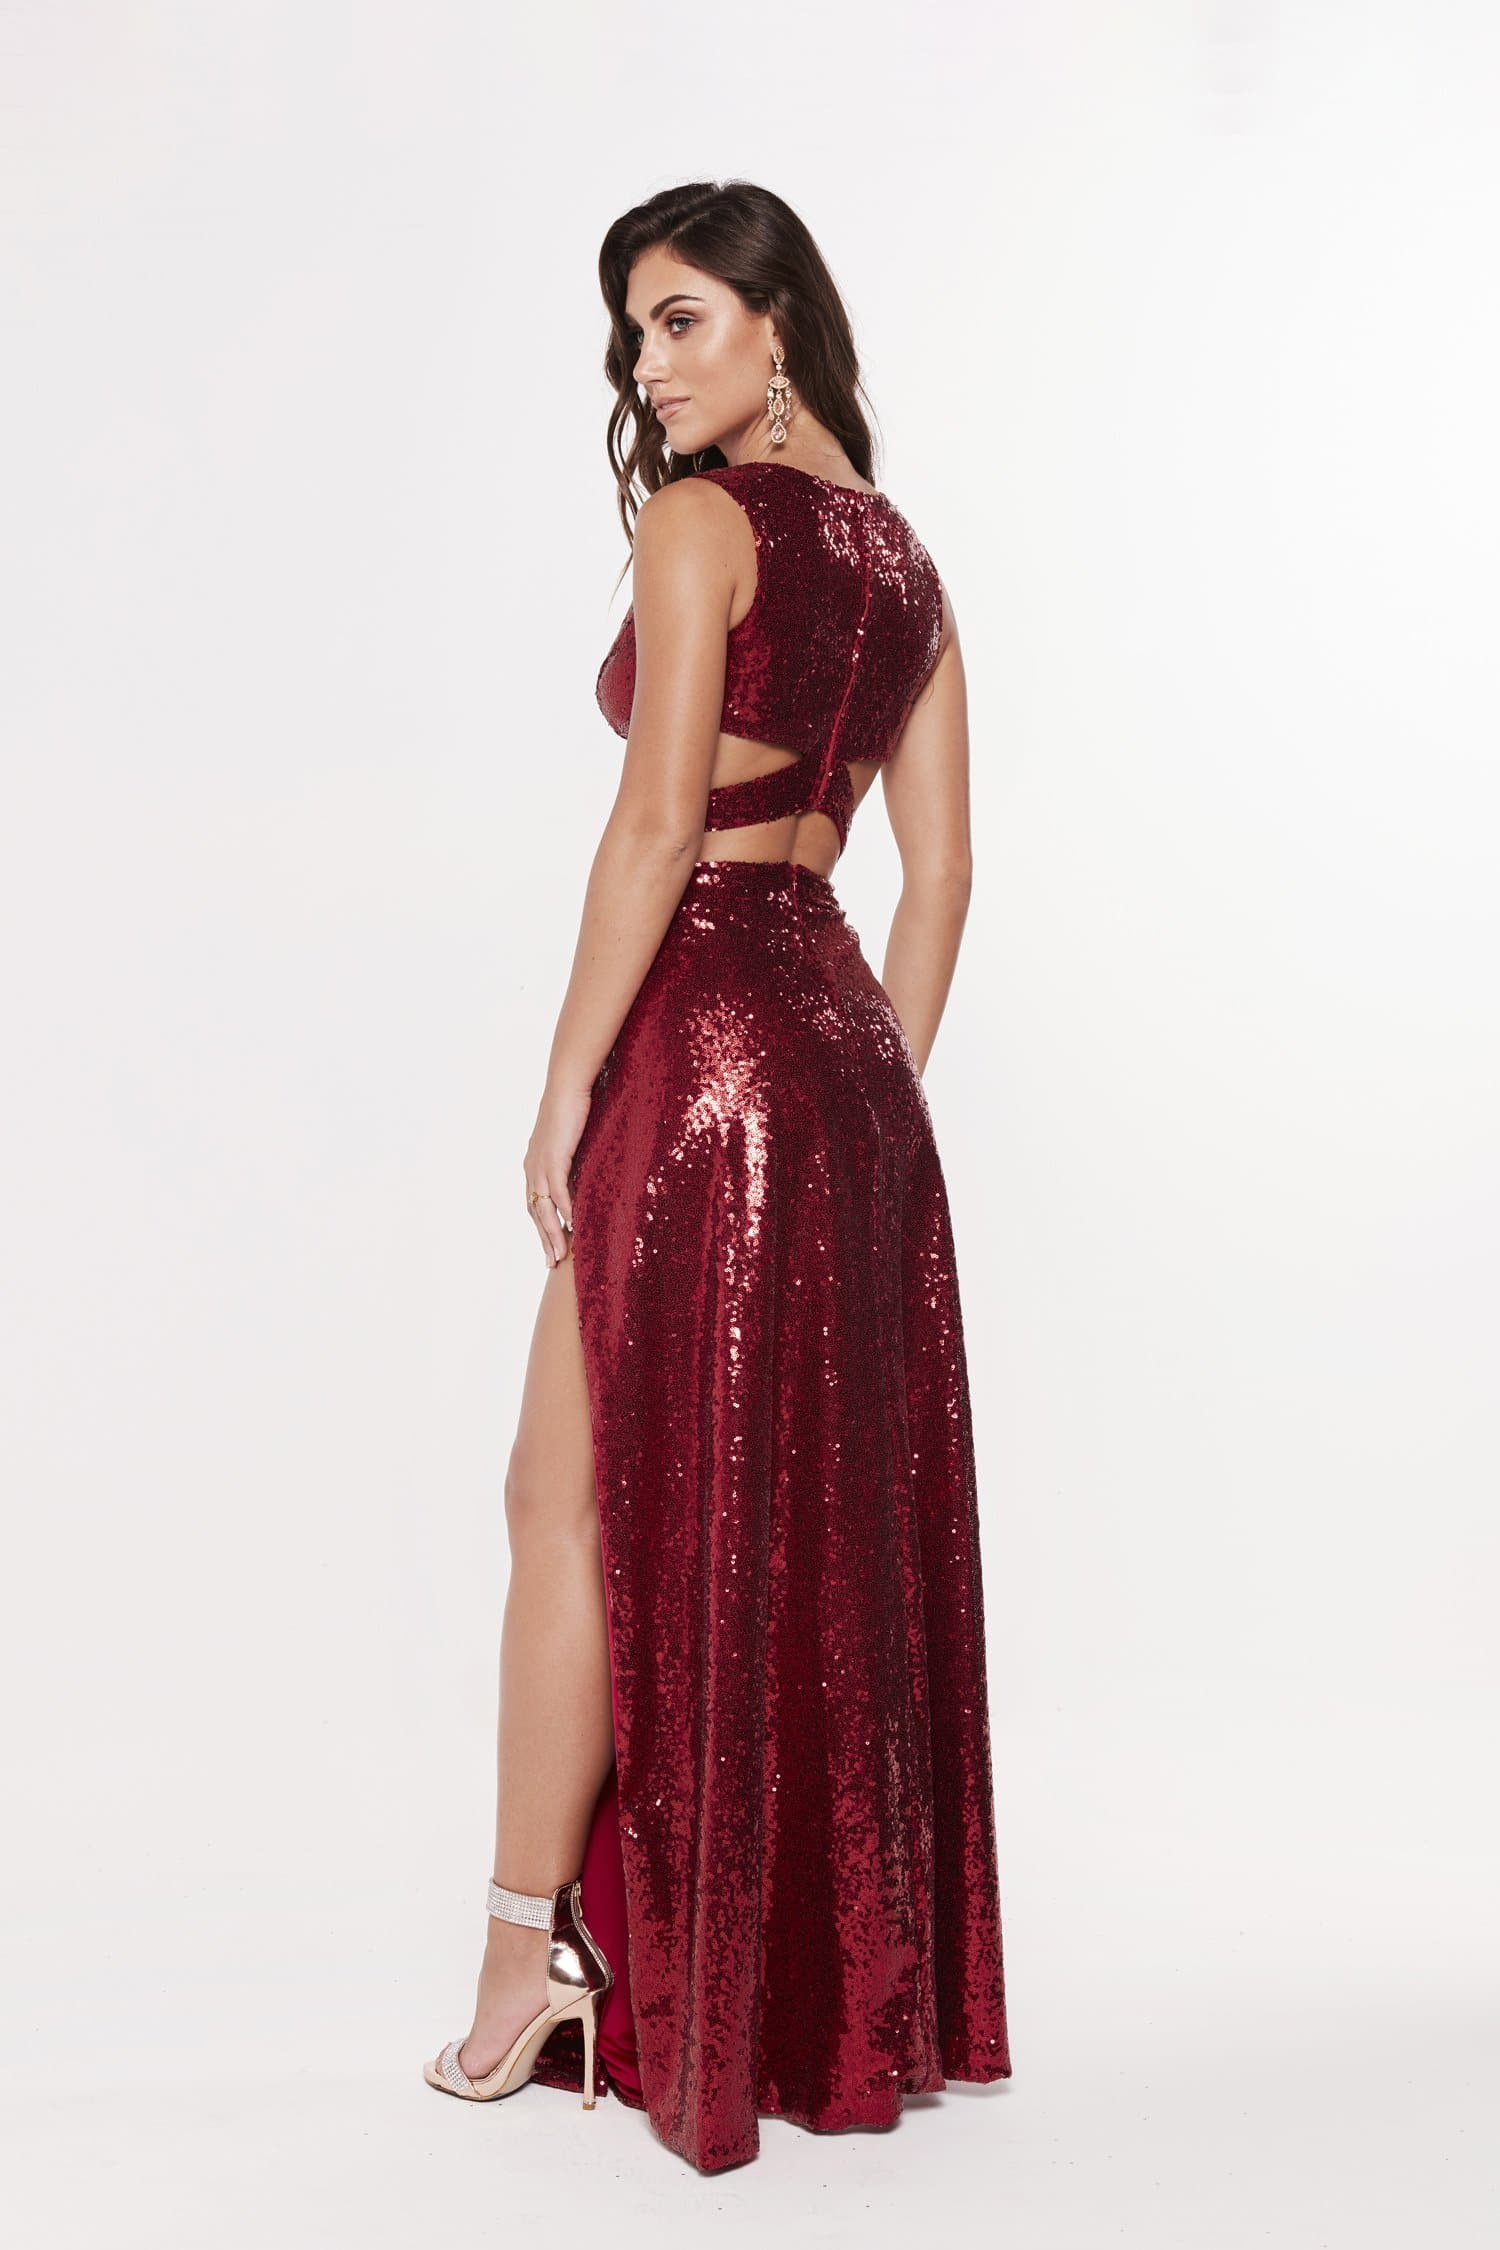 A&N Roxy - Deep Red Sequin Two Piece Gown with Side Cut Outs and Slit